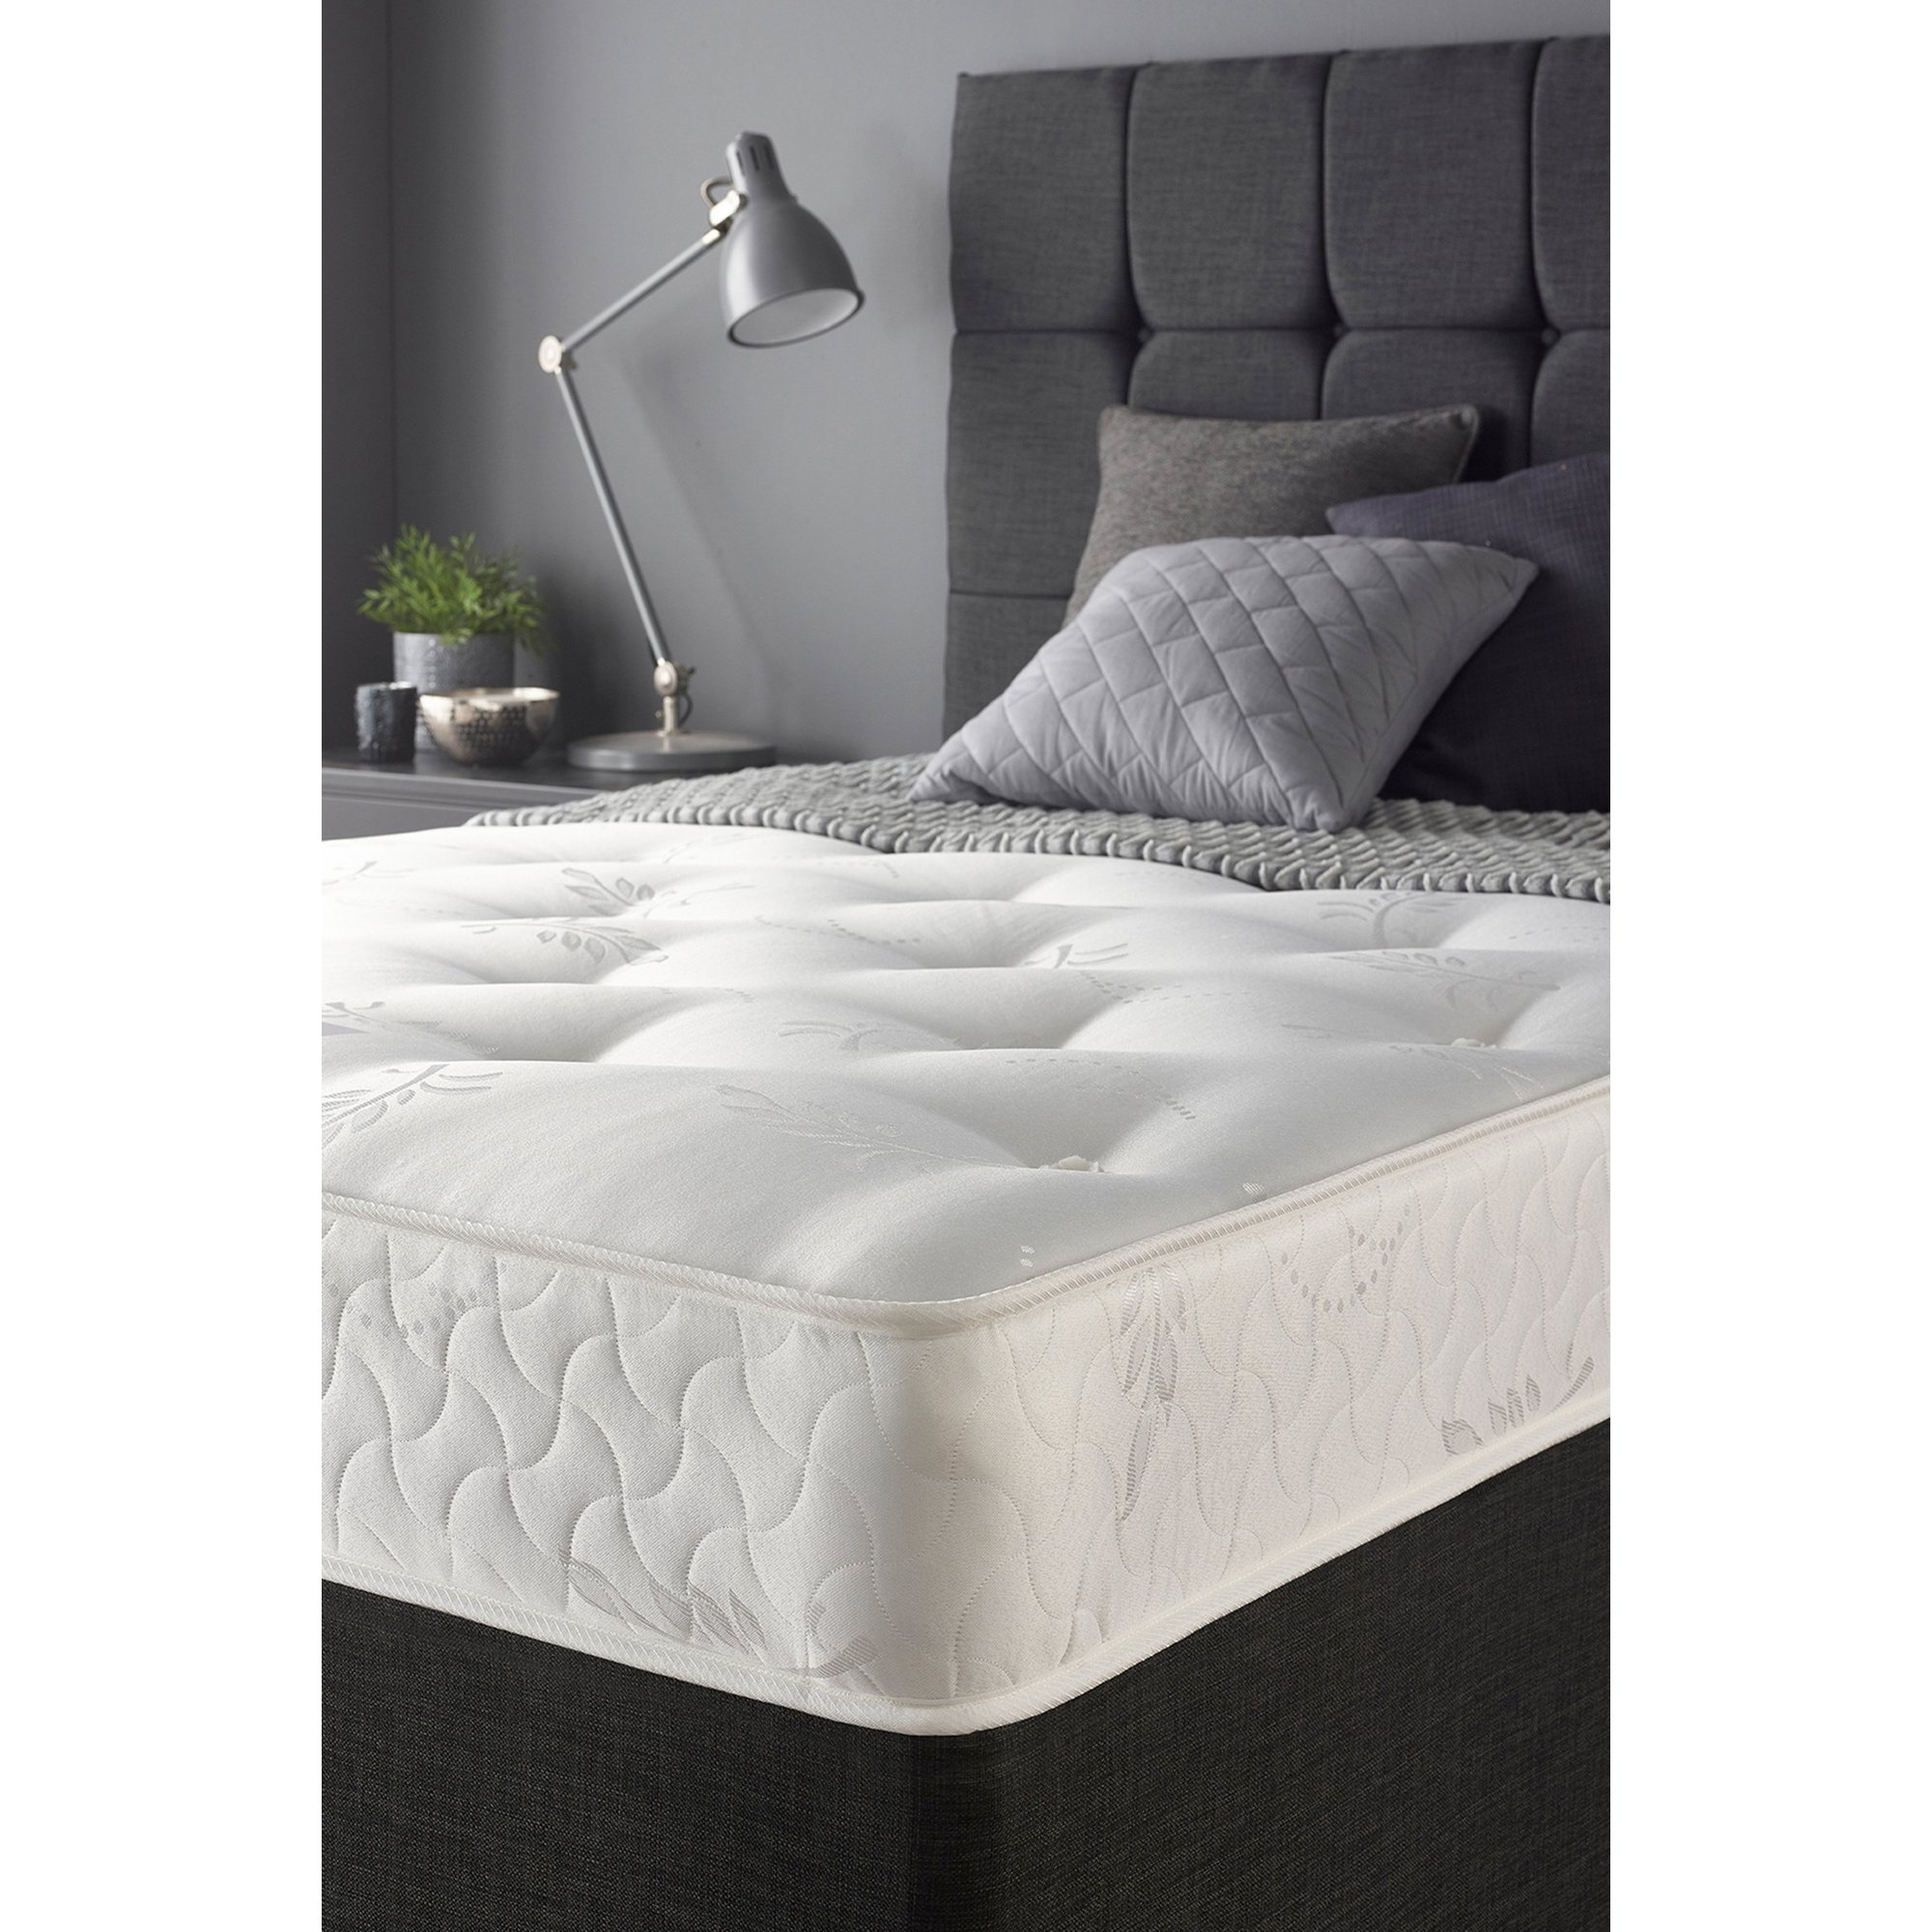 Image of Catherine Lansfield Classic Bonnell Mattress